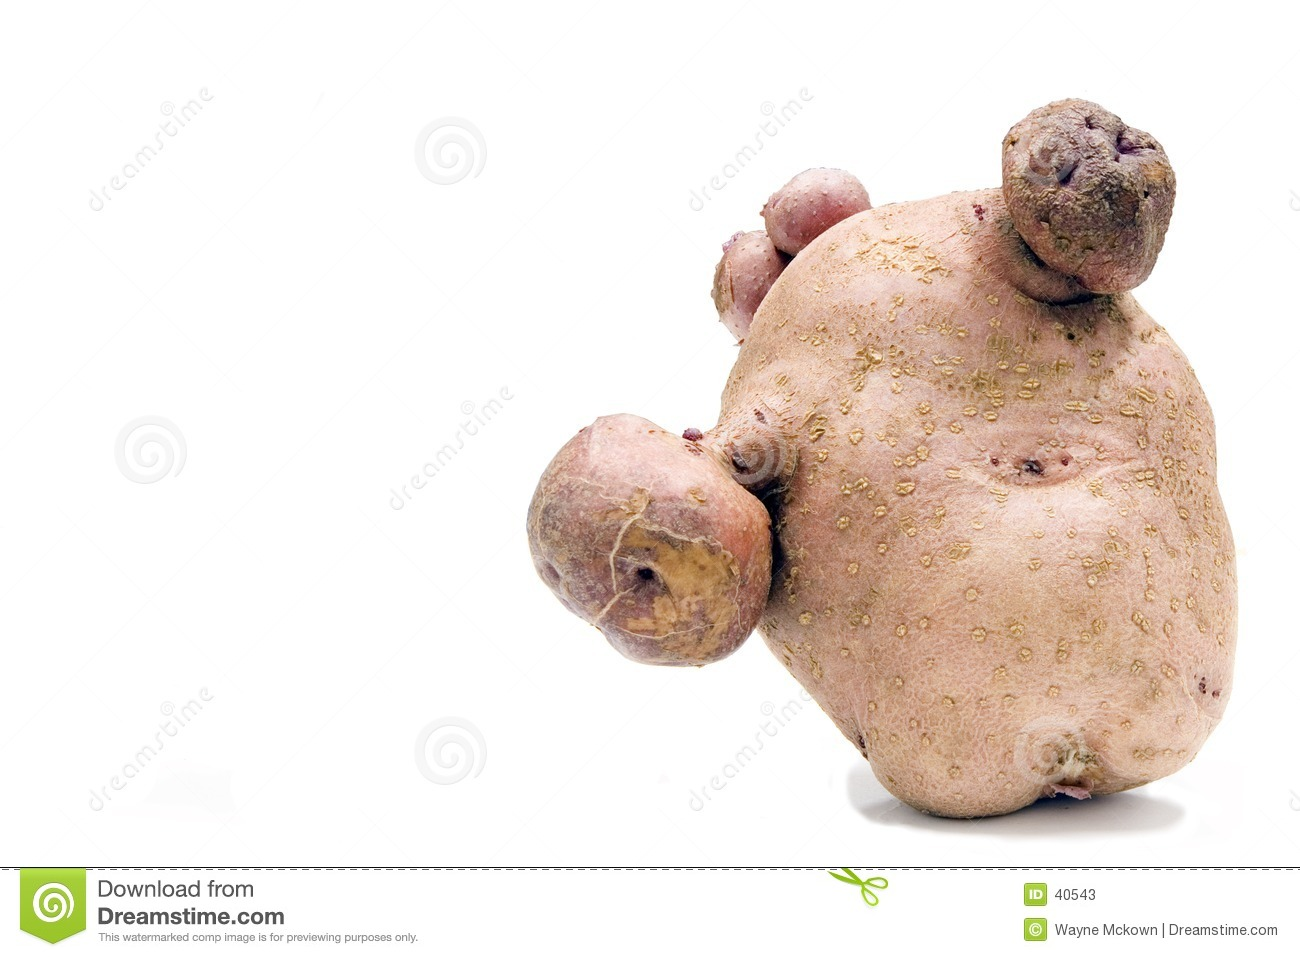 Potatoe desfigurado